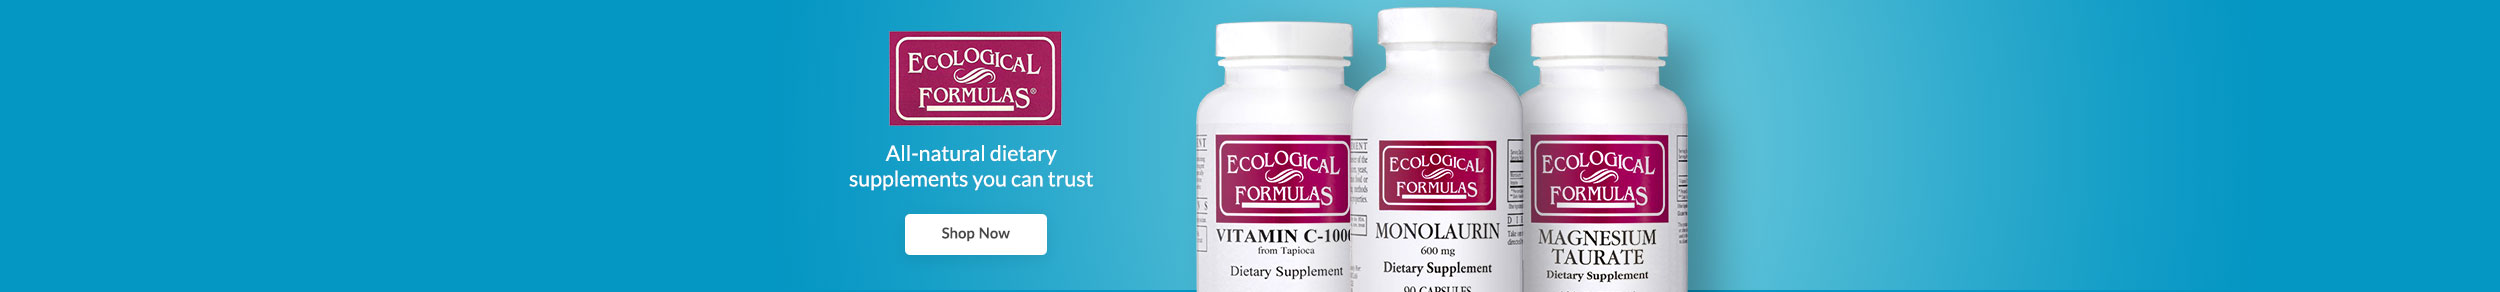 Ecological Formulas - All-natural dietary supplements you can trust